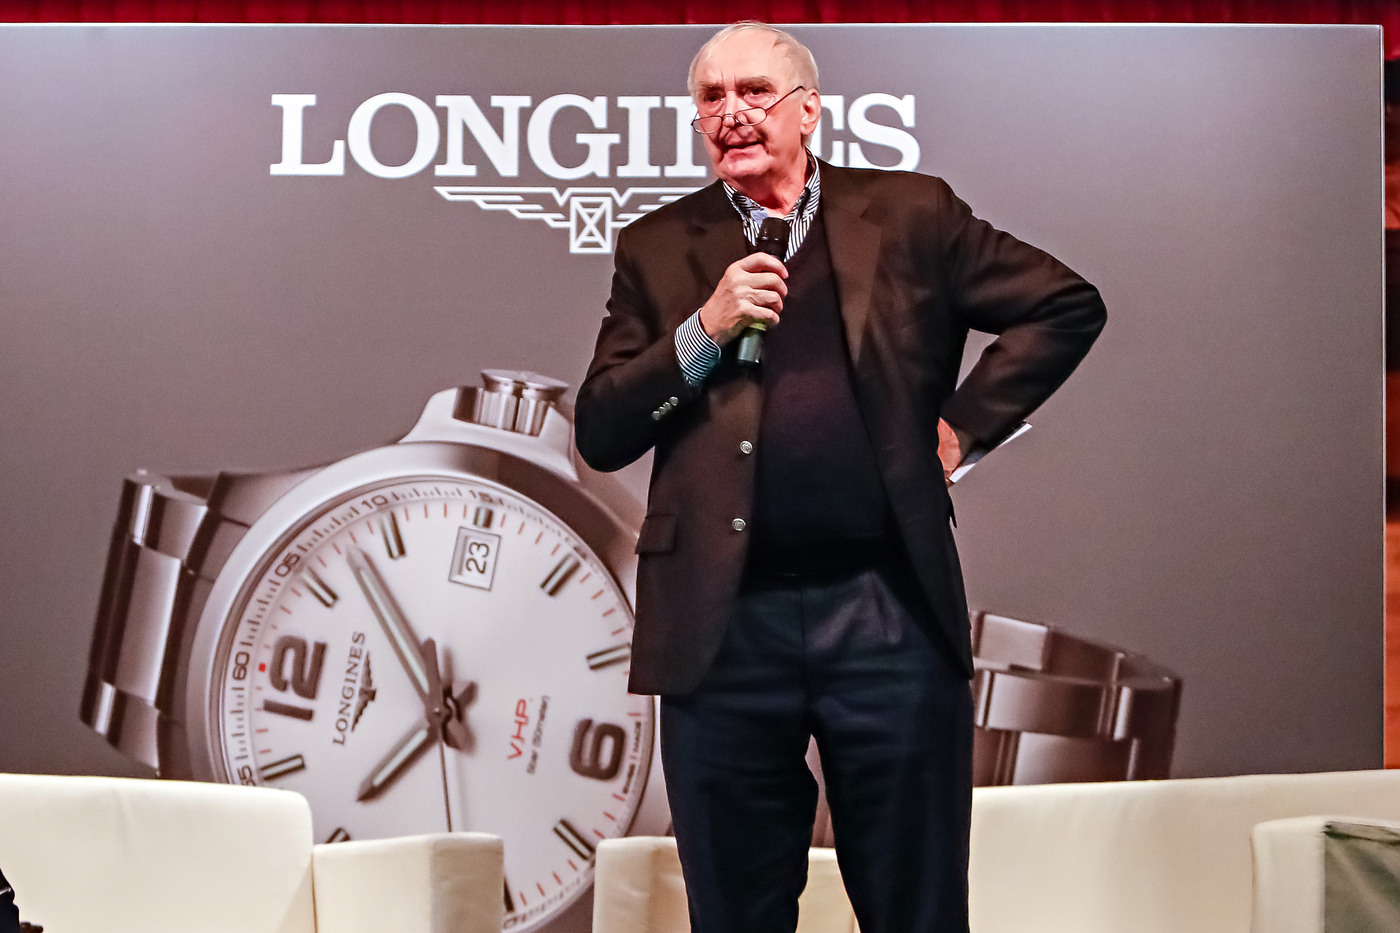 Longines Alpine Skiing Event: Longines in Sölden for the start of the FIS Alpine Ski World Cup 2019/2020 1